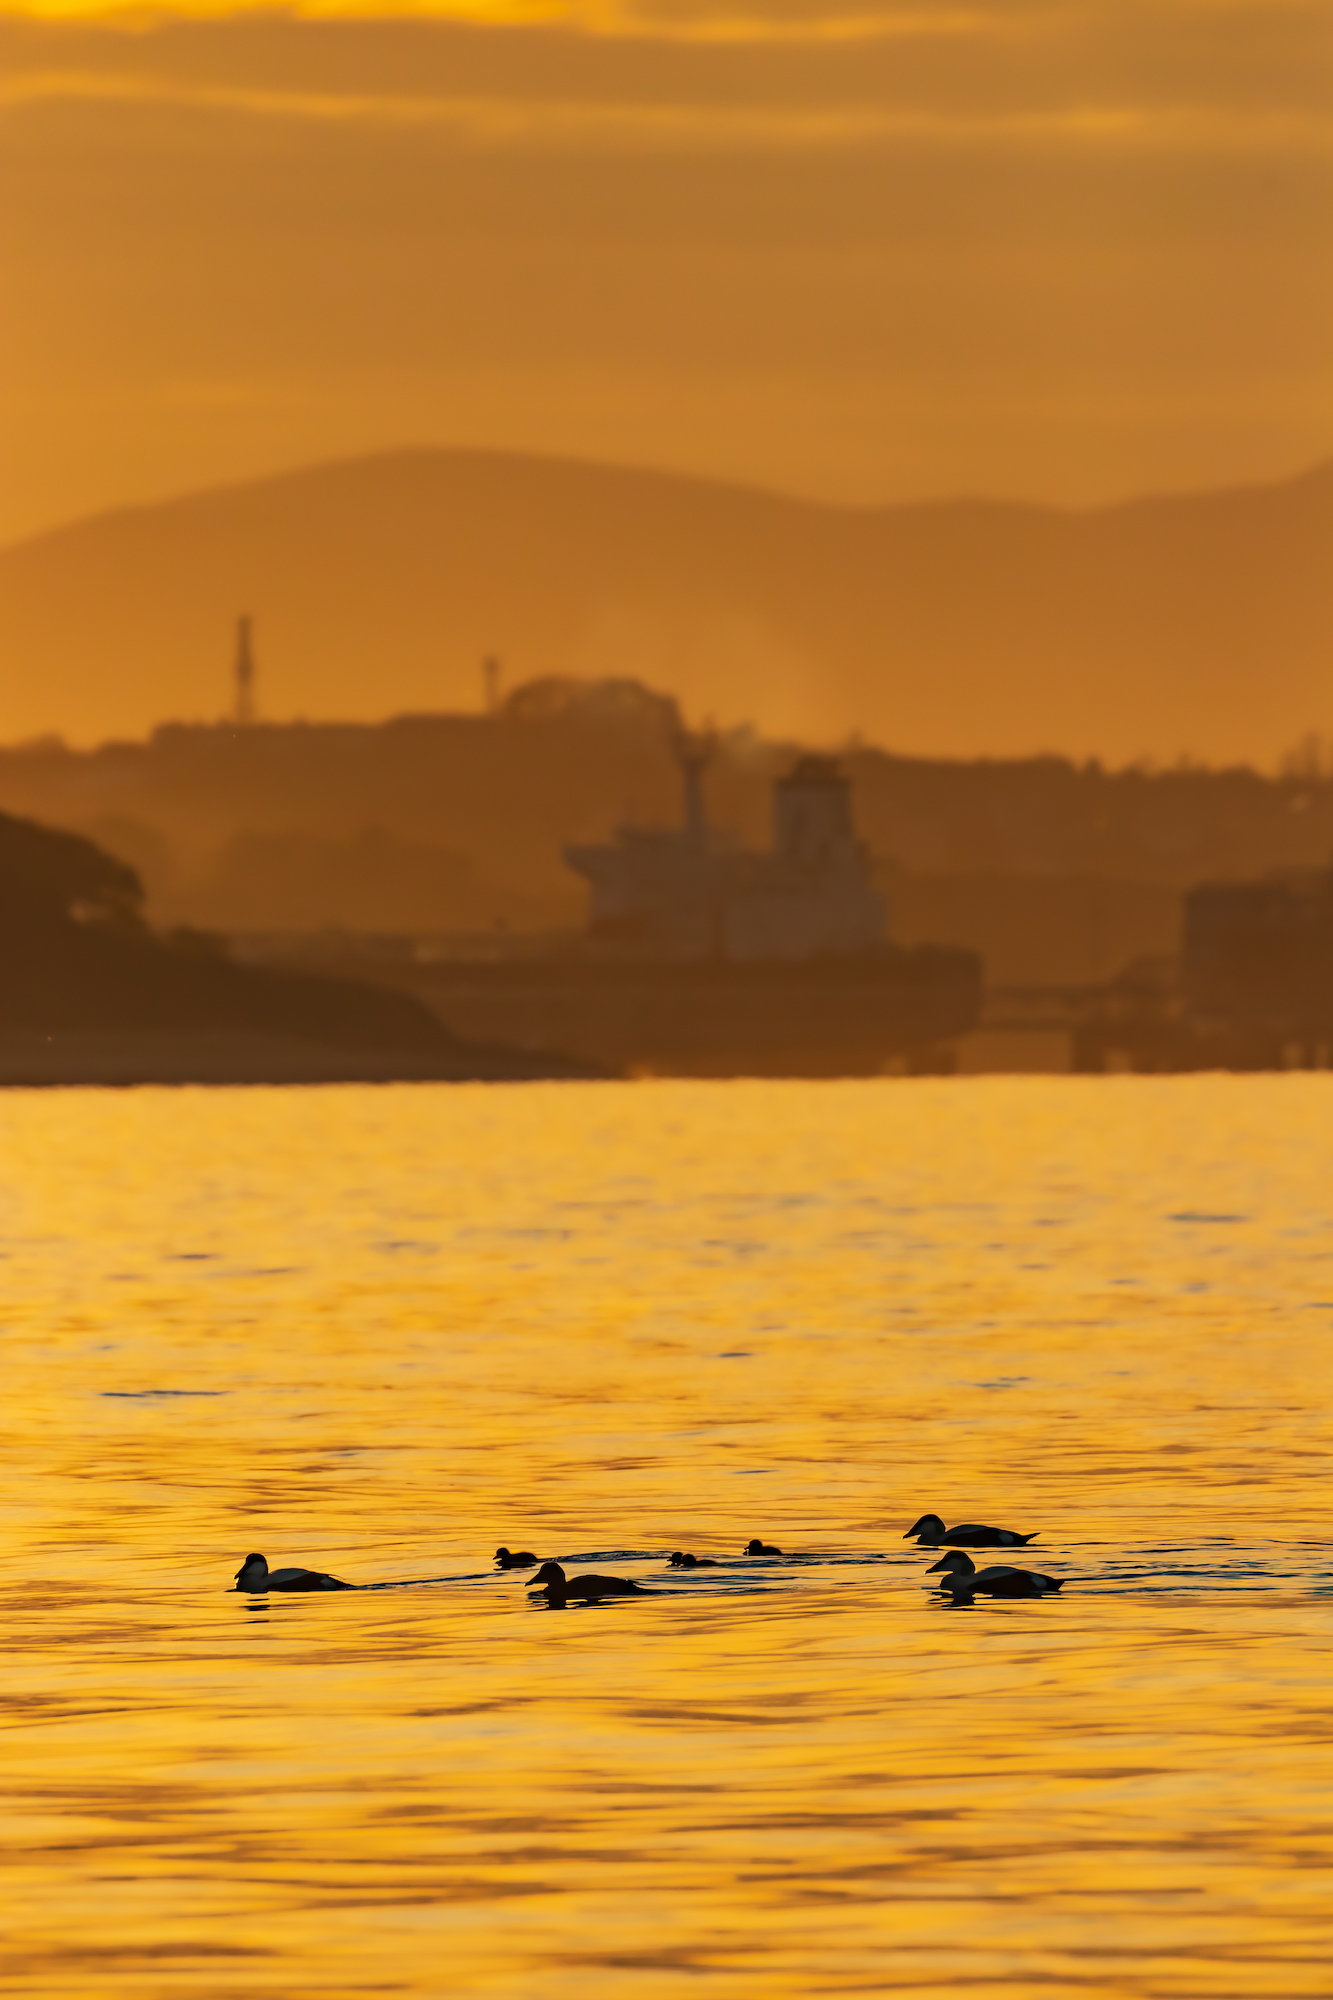 (1371) Nature Meets Industry, Common Eider Ducks and Ducklings, Somateria mollissima, St. Cuthbert's Duck, Cuddy's Duck, Hound Point Terminal, Firth of Forth, Rosebery Estate, Cramond, Edinburgh, Scotland. May 2019. Copyright David Wheater.jpg